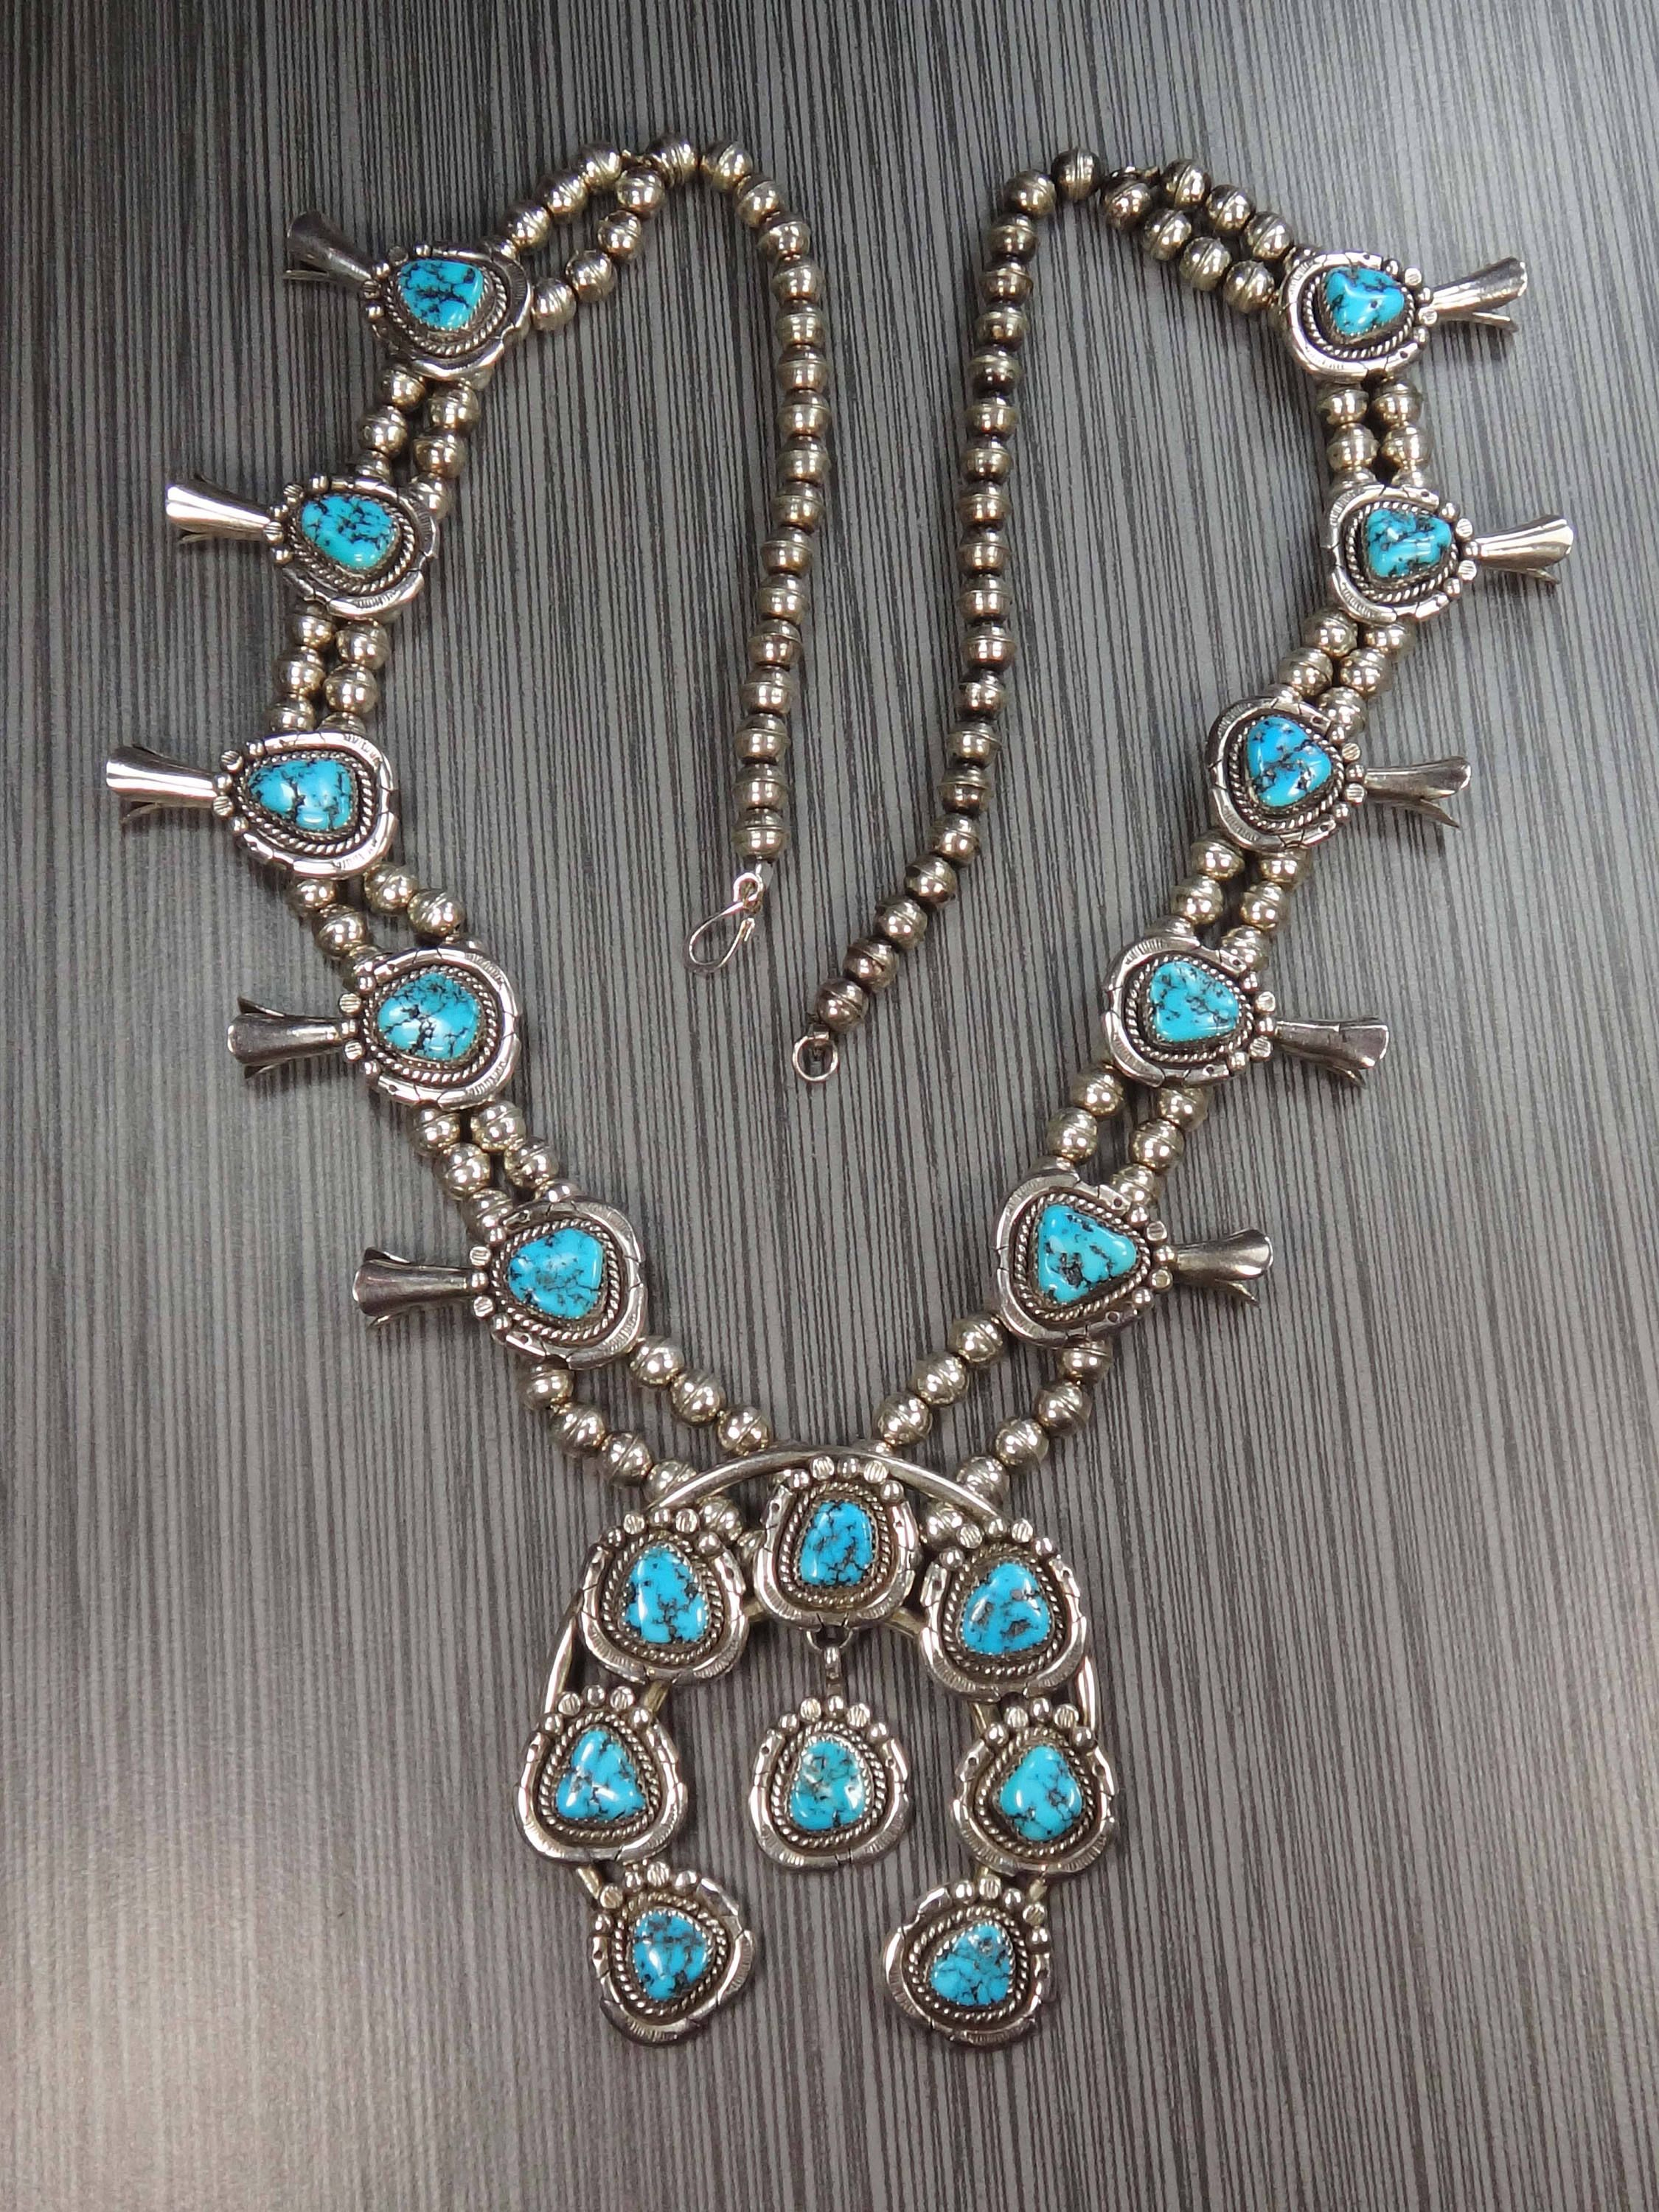 e43c4ca33 $1,250 --- Vintage Sterling Silver Turquoise Squash Blossom Necklace Y. &  N. Edsitty Turquoise Necklace Navajo Turquoise Native American Southwestern  by ...